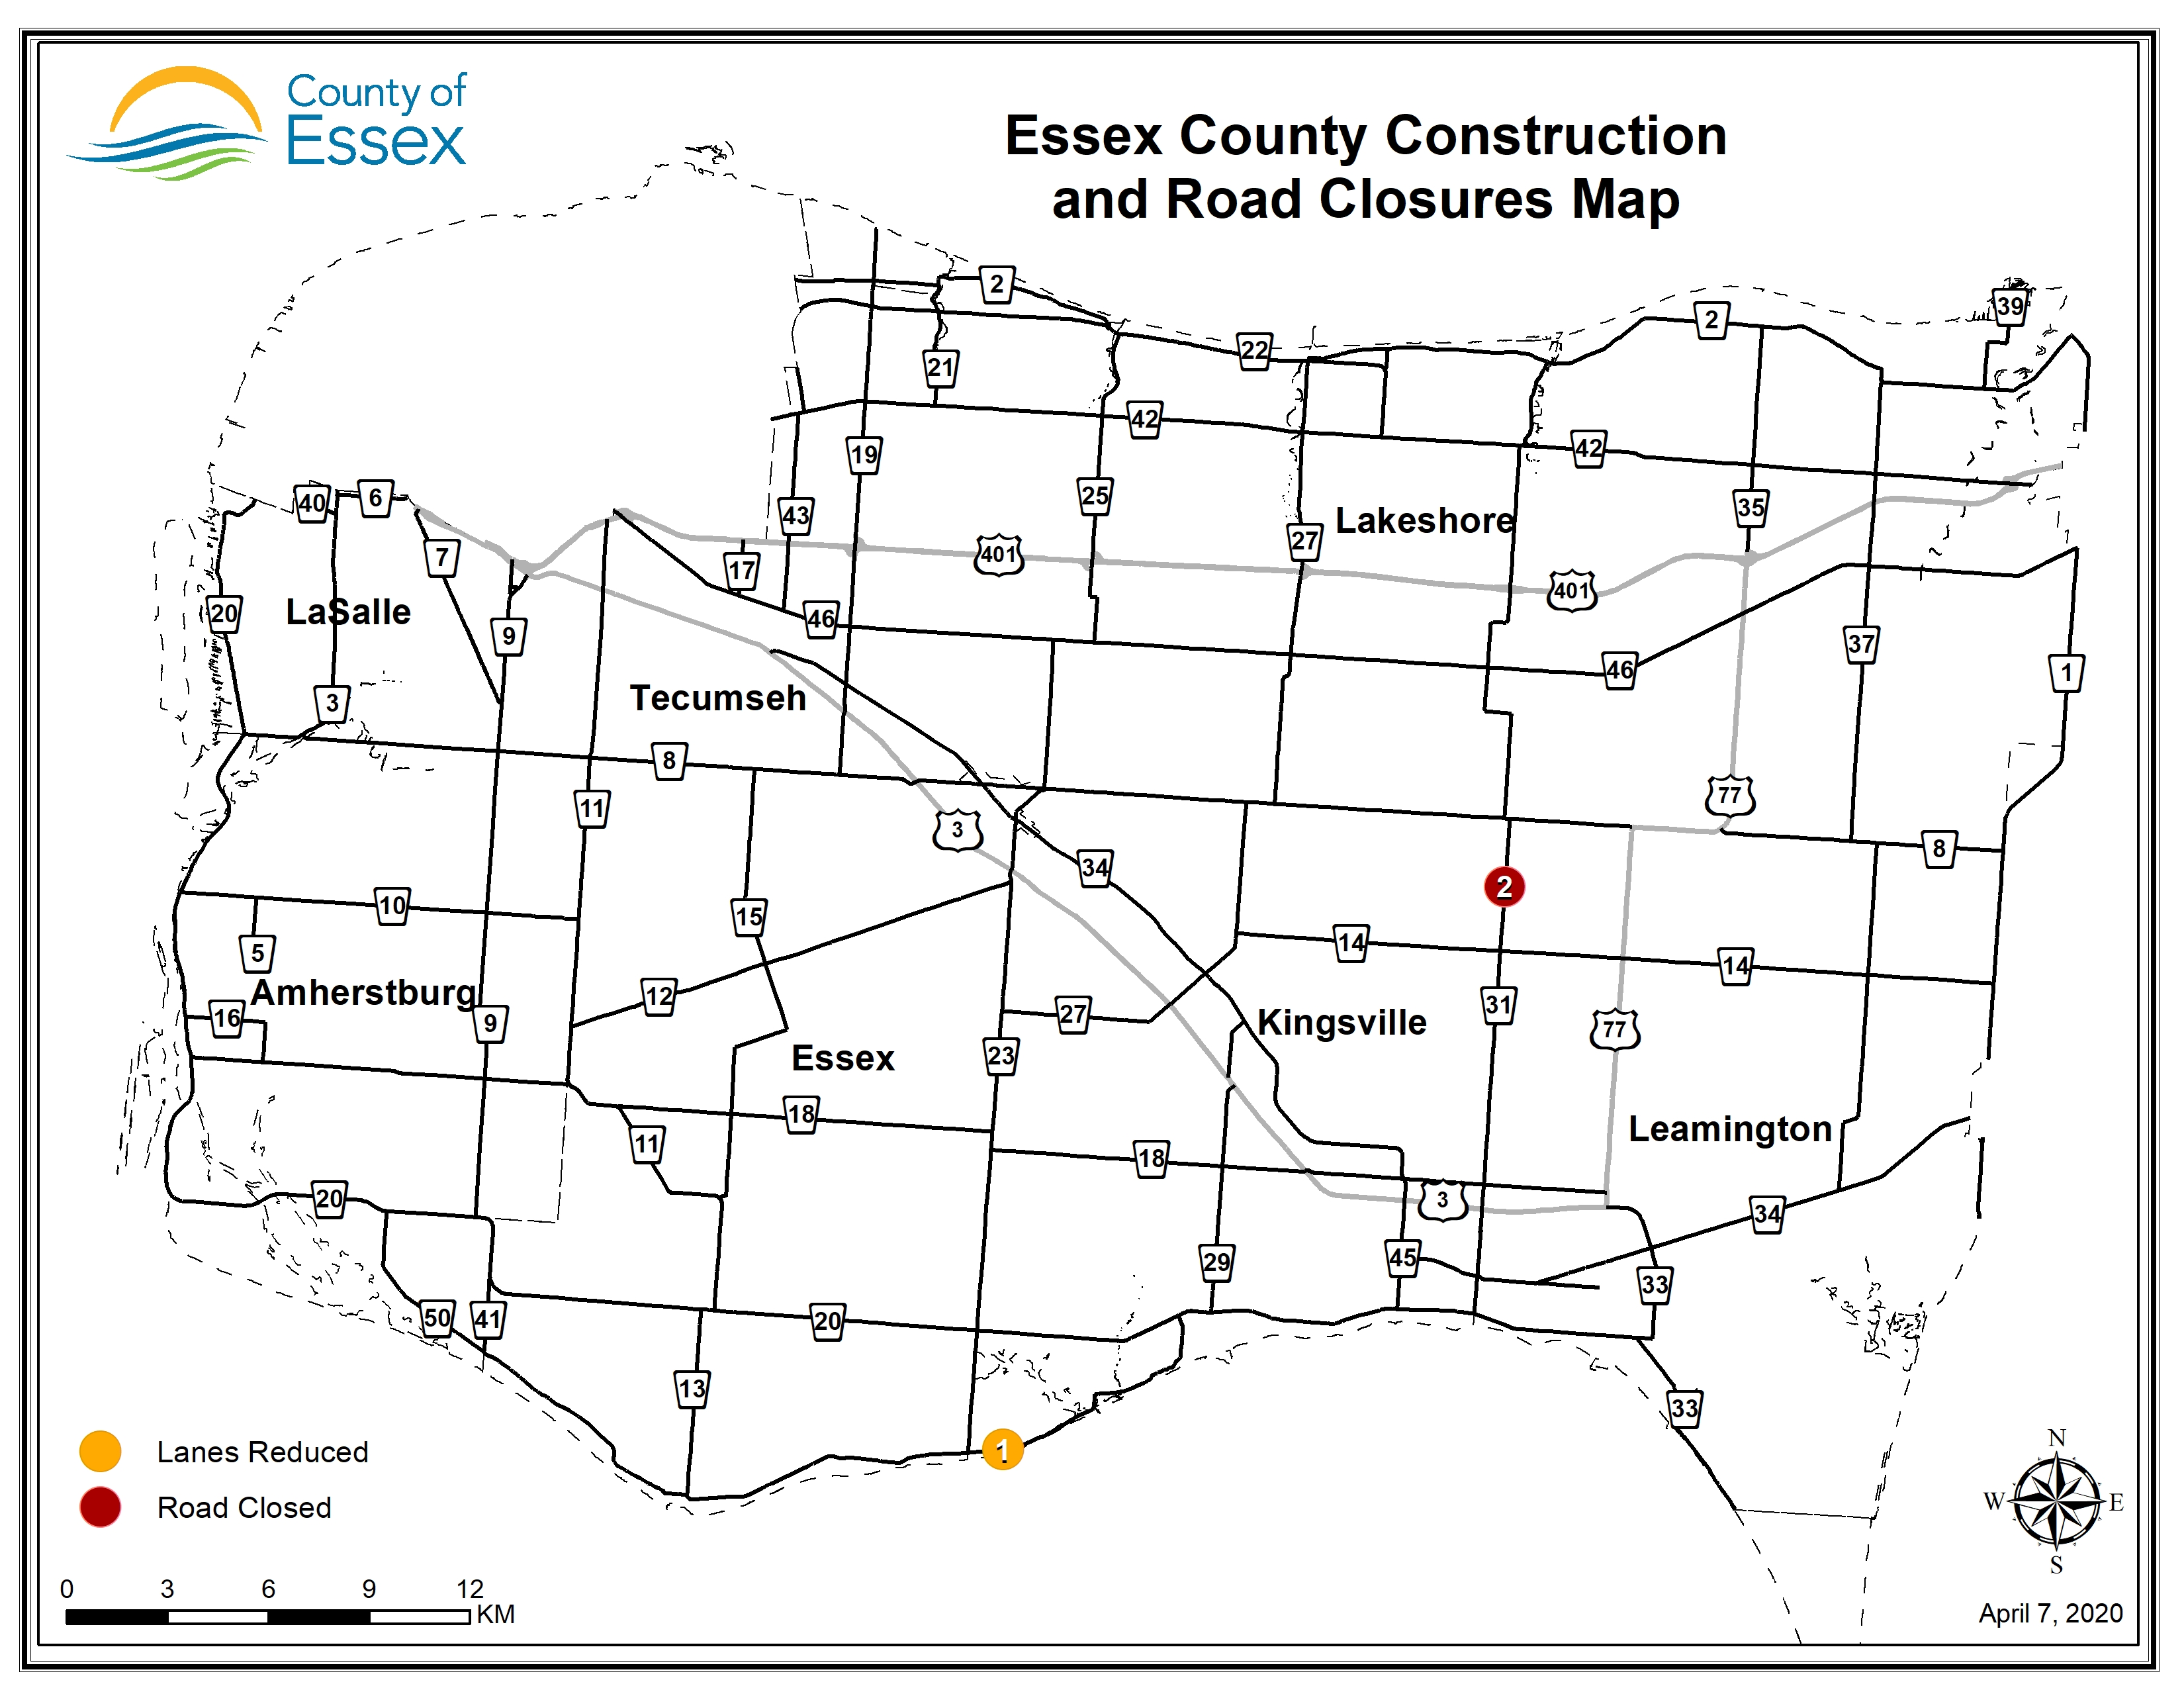 A map of Essex County showing road closures and lane restrictions on April 8, 2020.